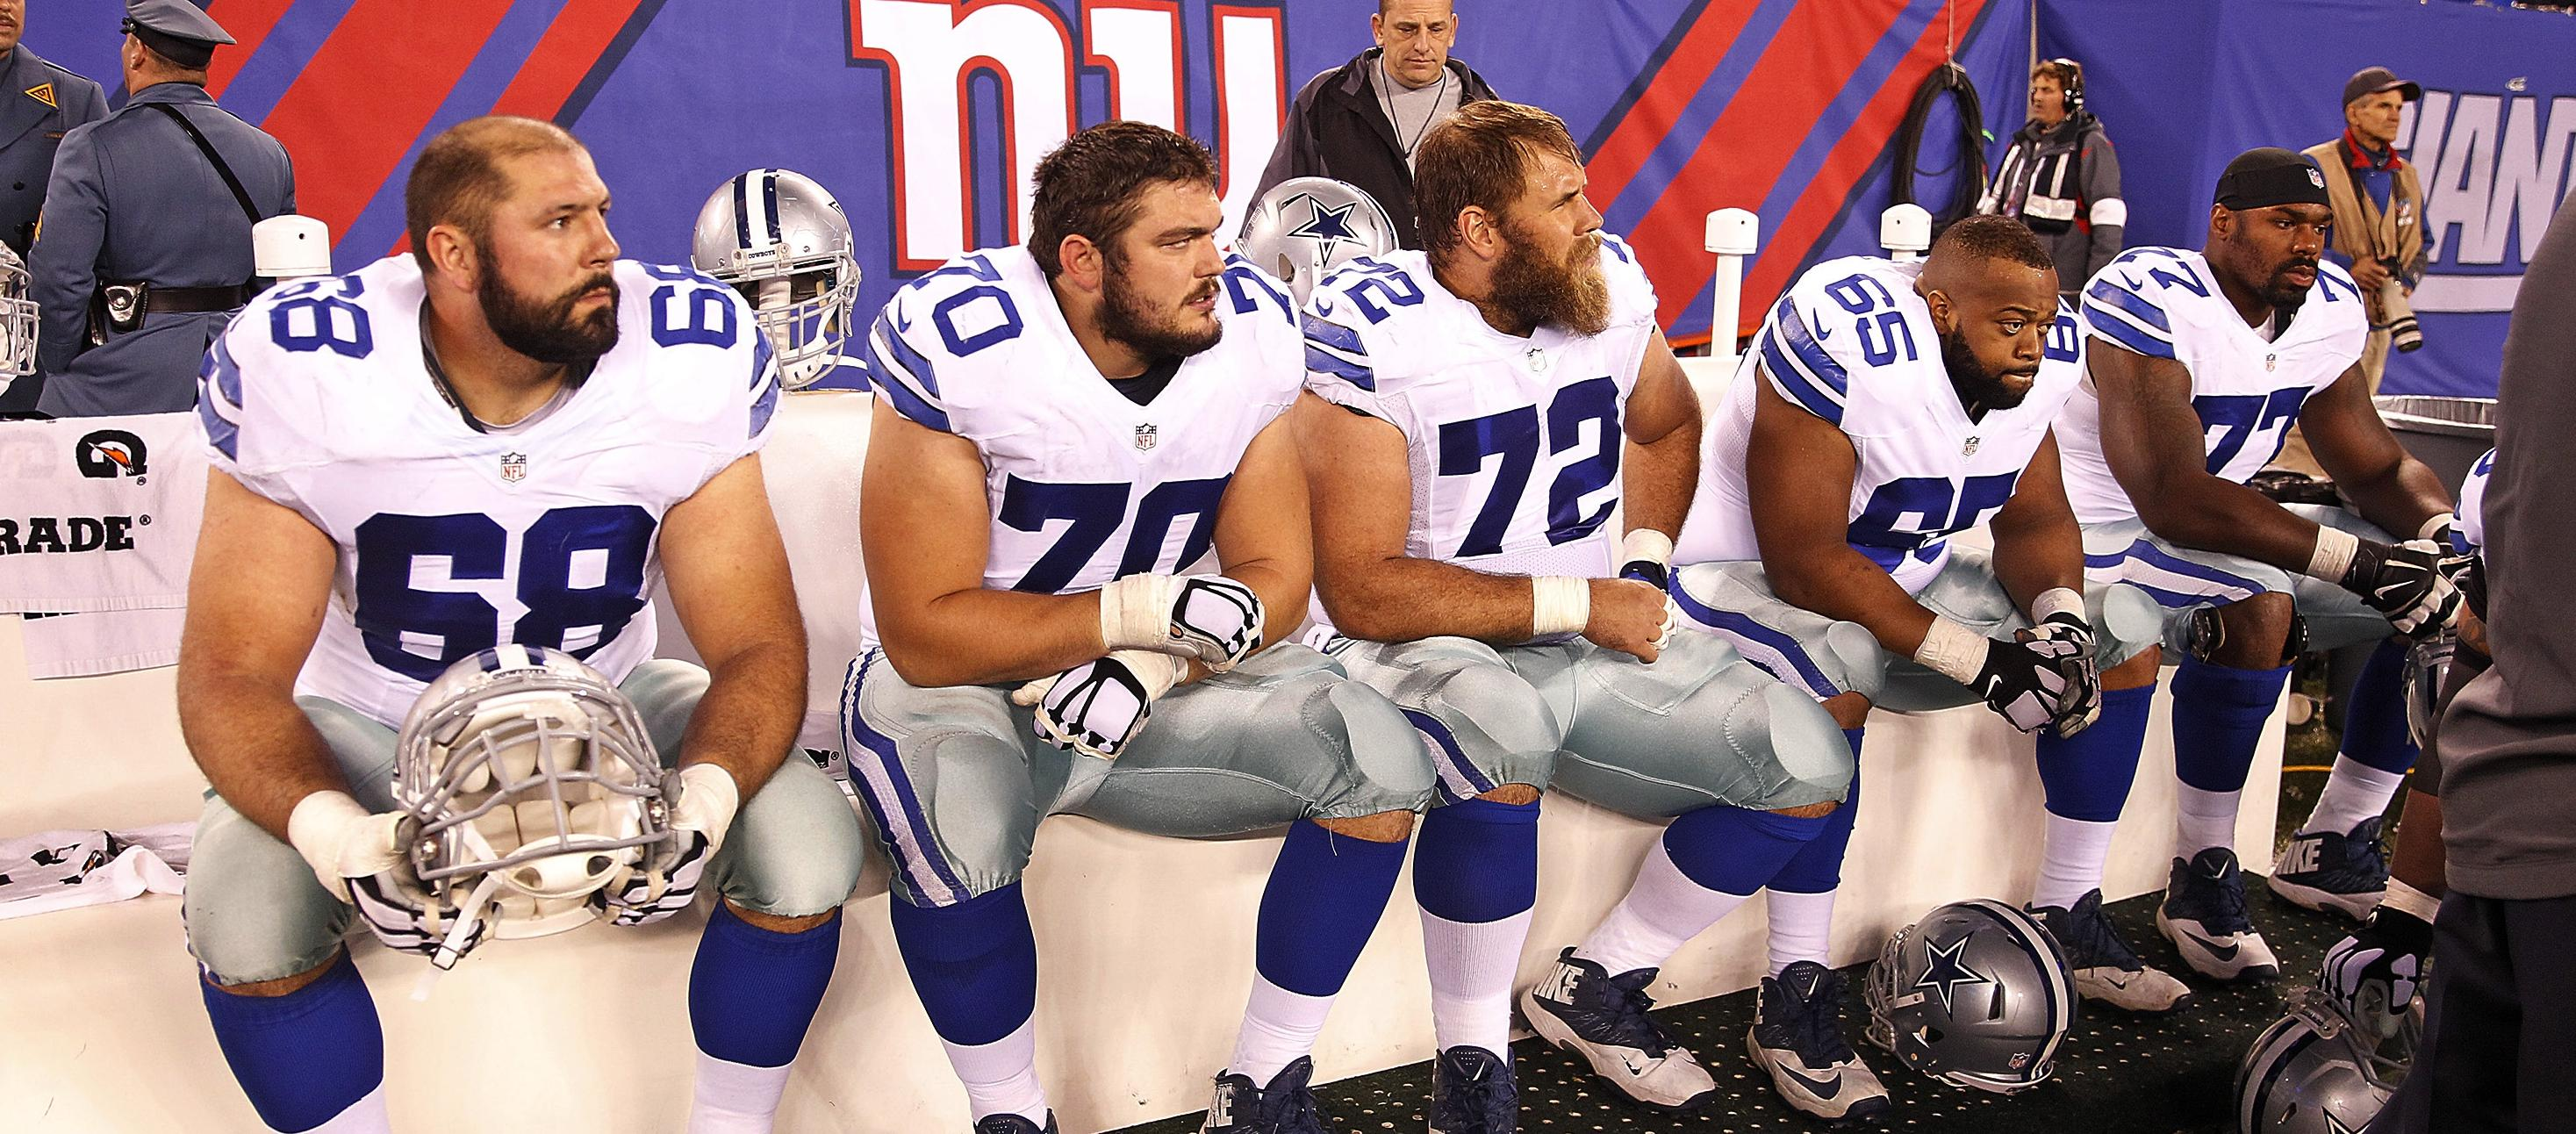 Cowboys Blog - Cowboys Position Battle Evaluations: Offensive Line